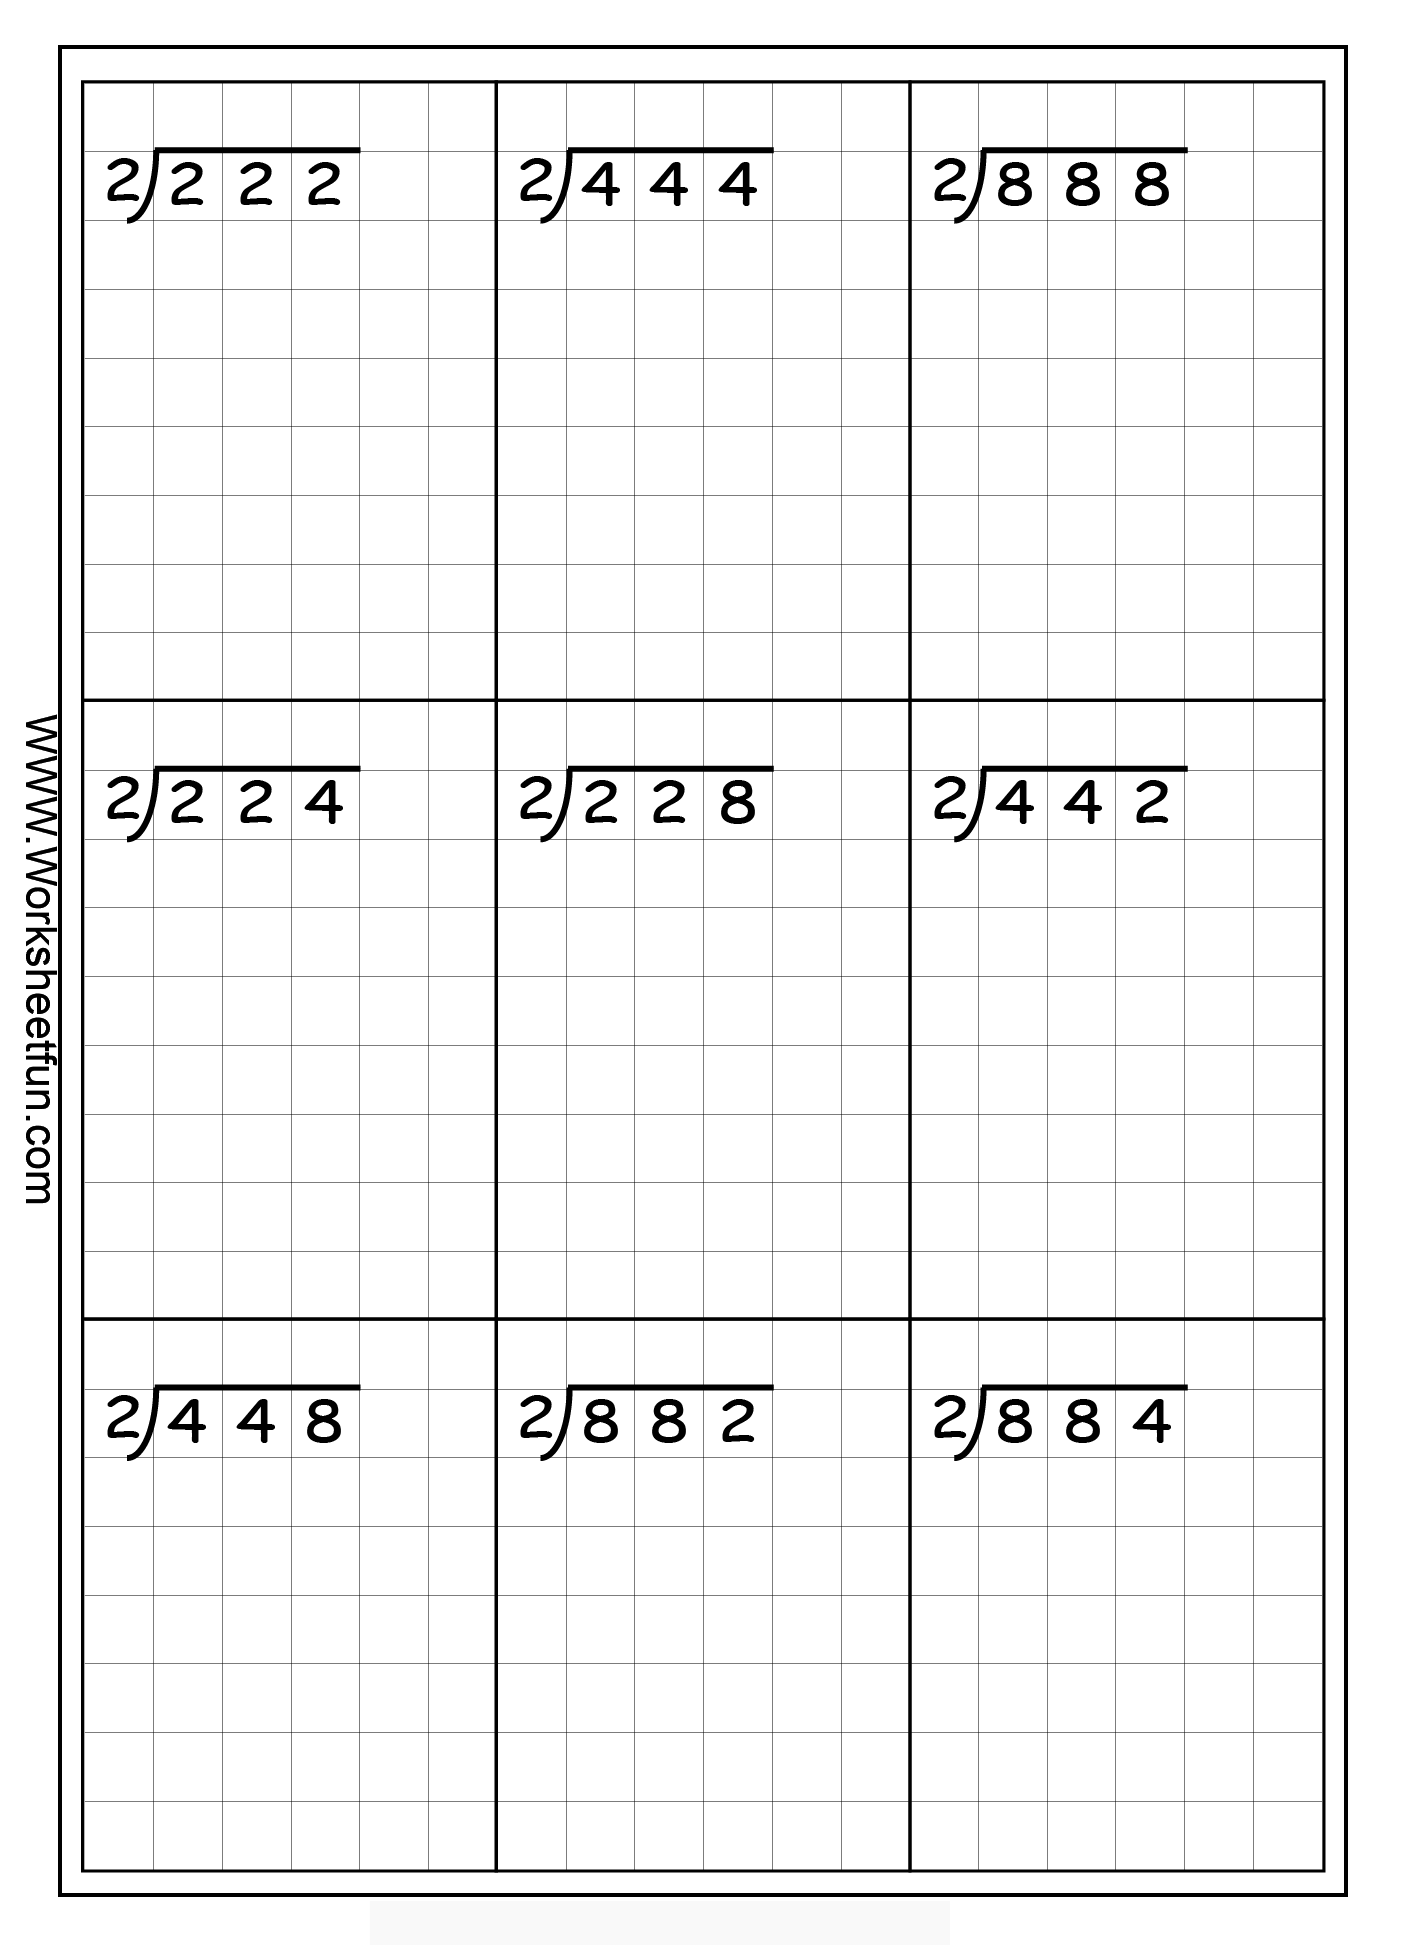 worksheet Free Long Division Worksheets long division teaching ideas pinterest 3 digits by 1 digit without remainders 20 worksheets free printable worksheets